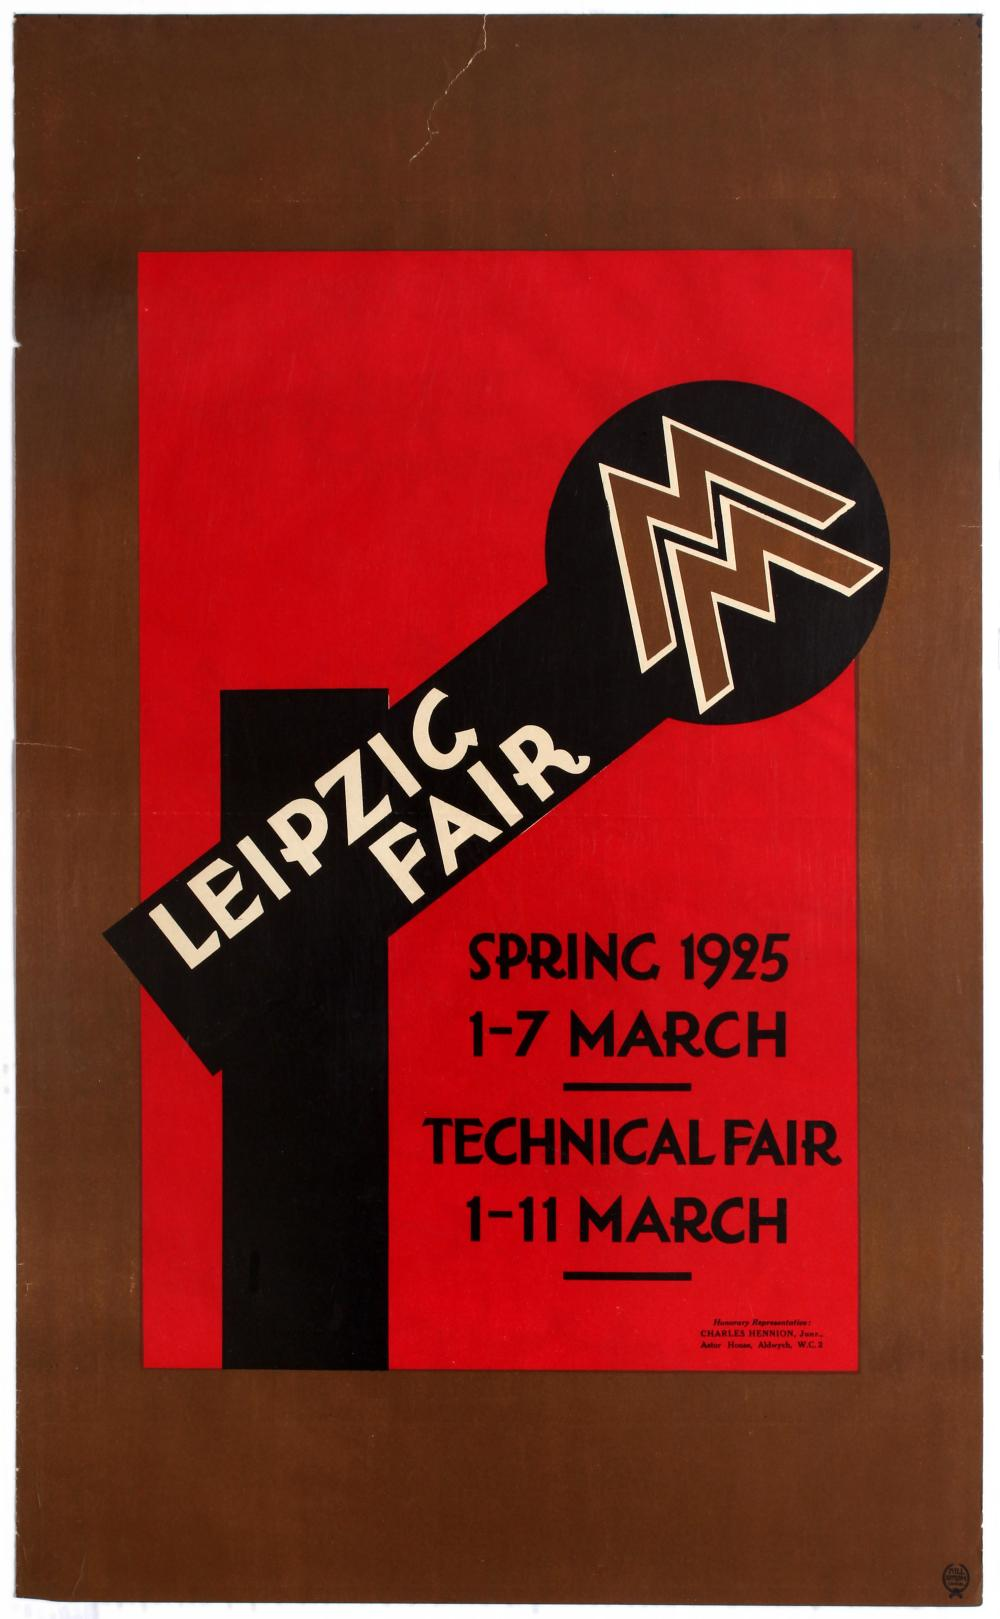 Sold Price Advertising Poster Leipzig Fair Technical Fair Spring 1925 Germany Bauhaus August 6 0119 3 00 Pm Bst